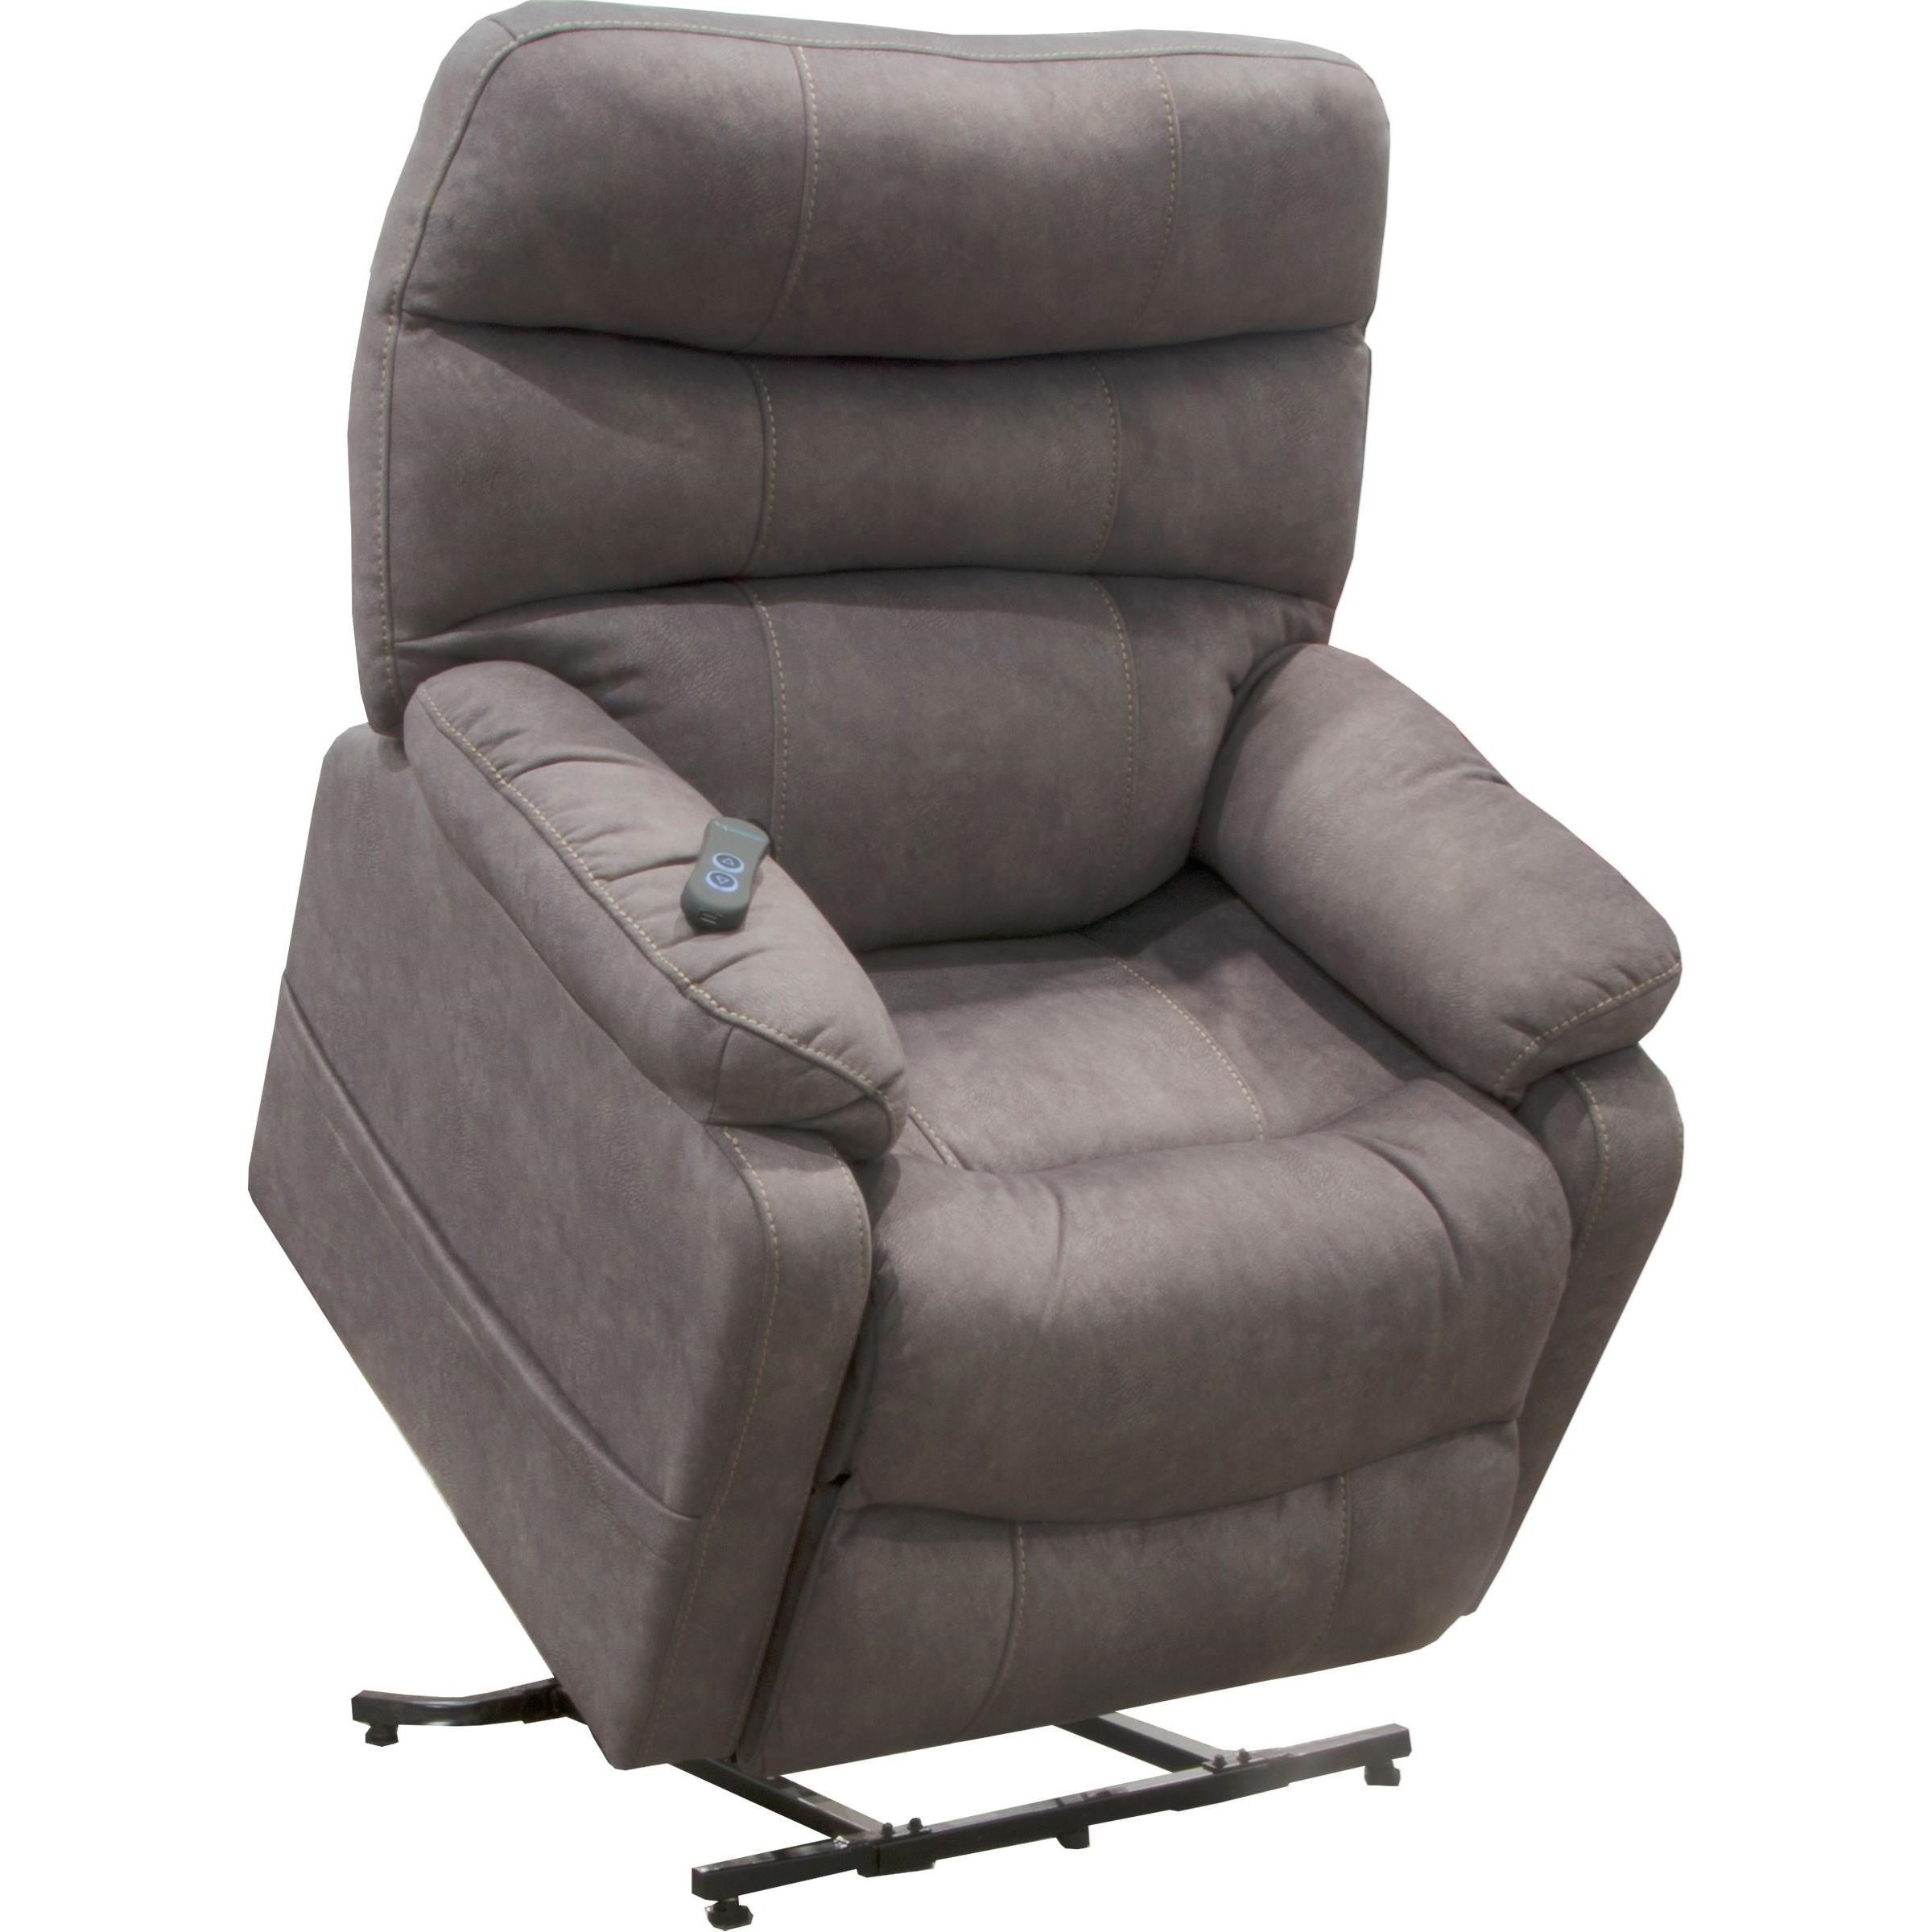 Catnapper Buckley Power Lift Recliner With Usb Charging